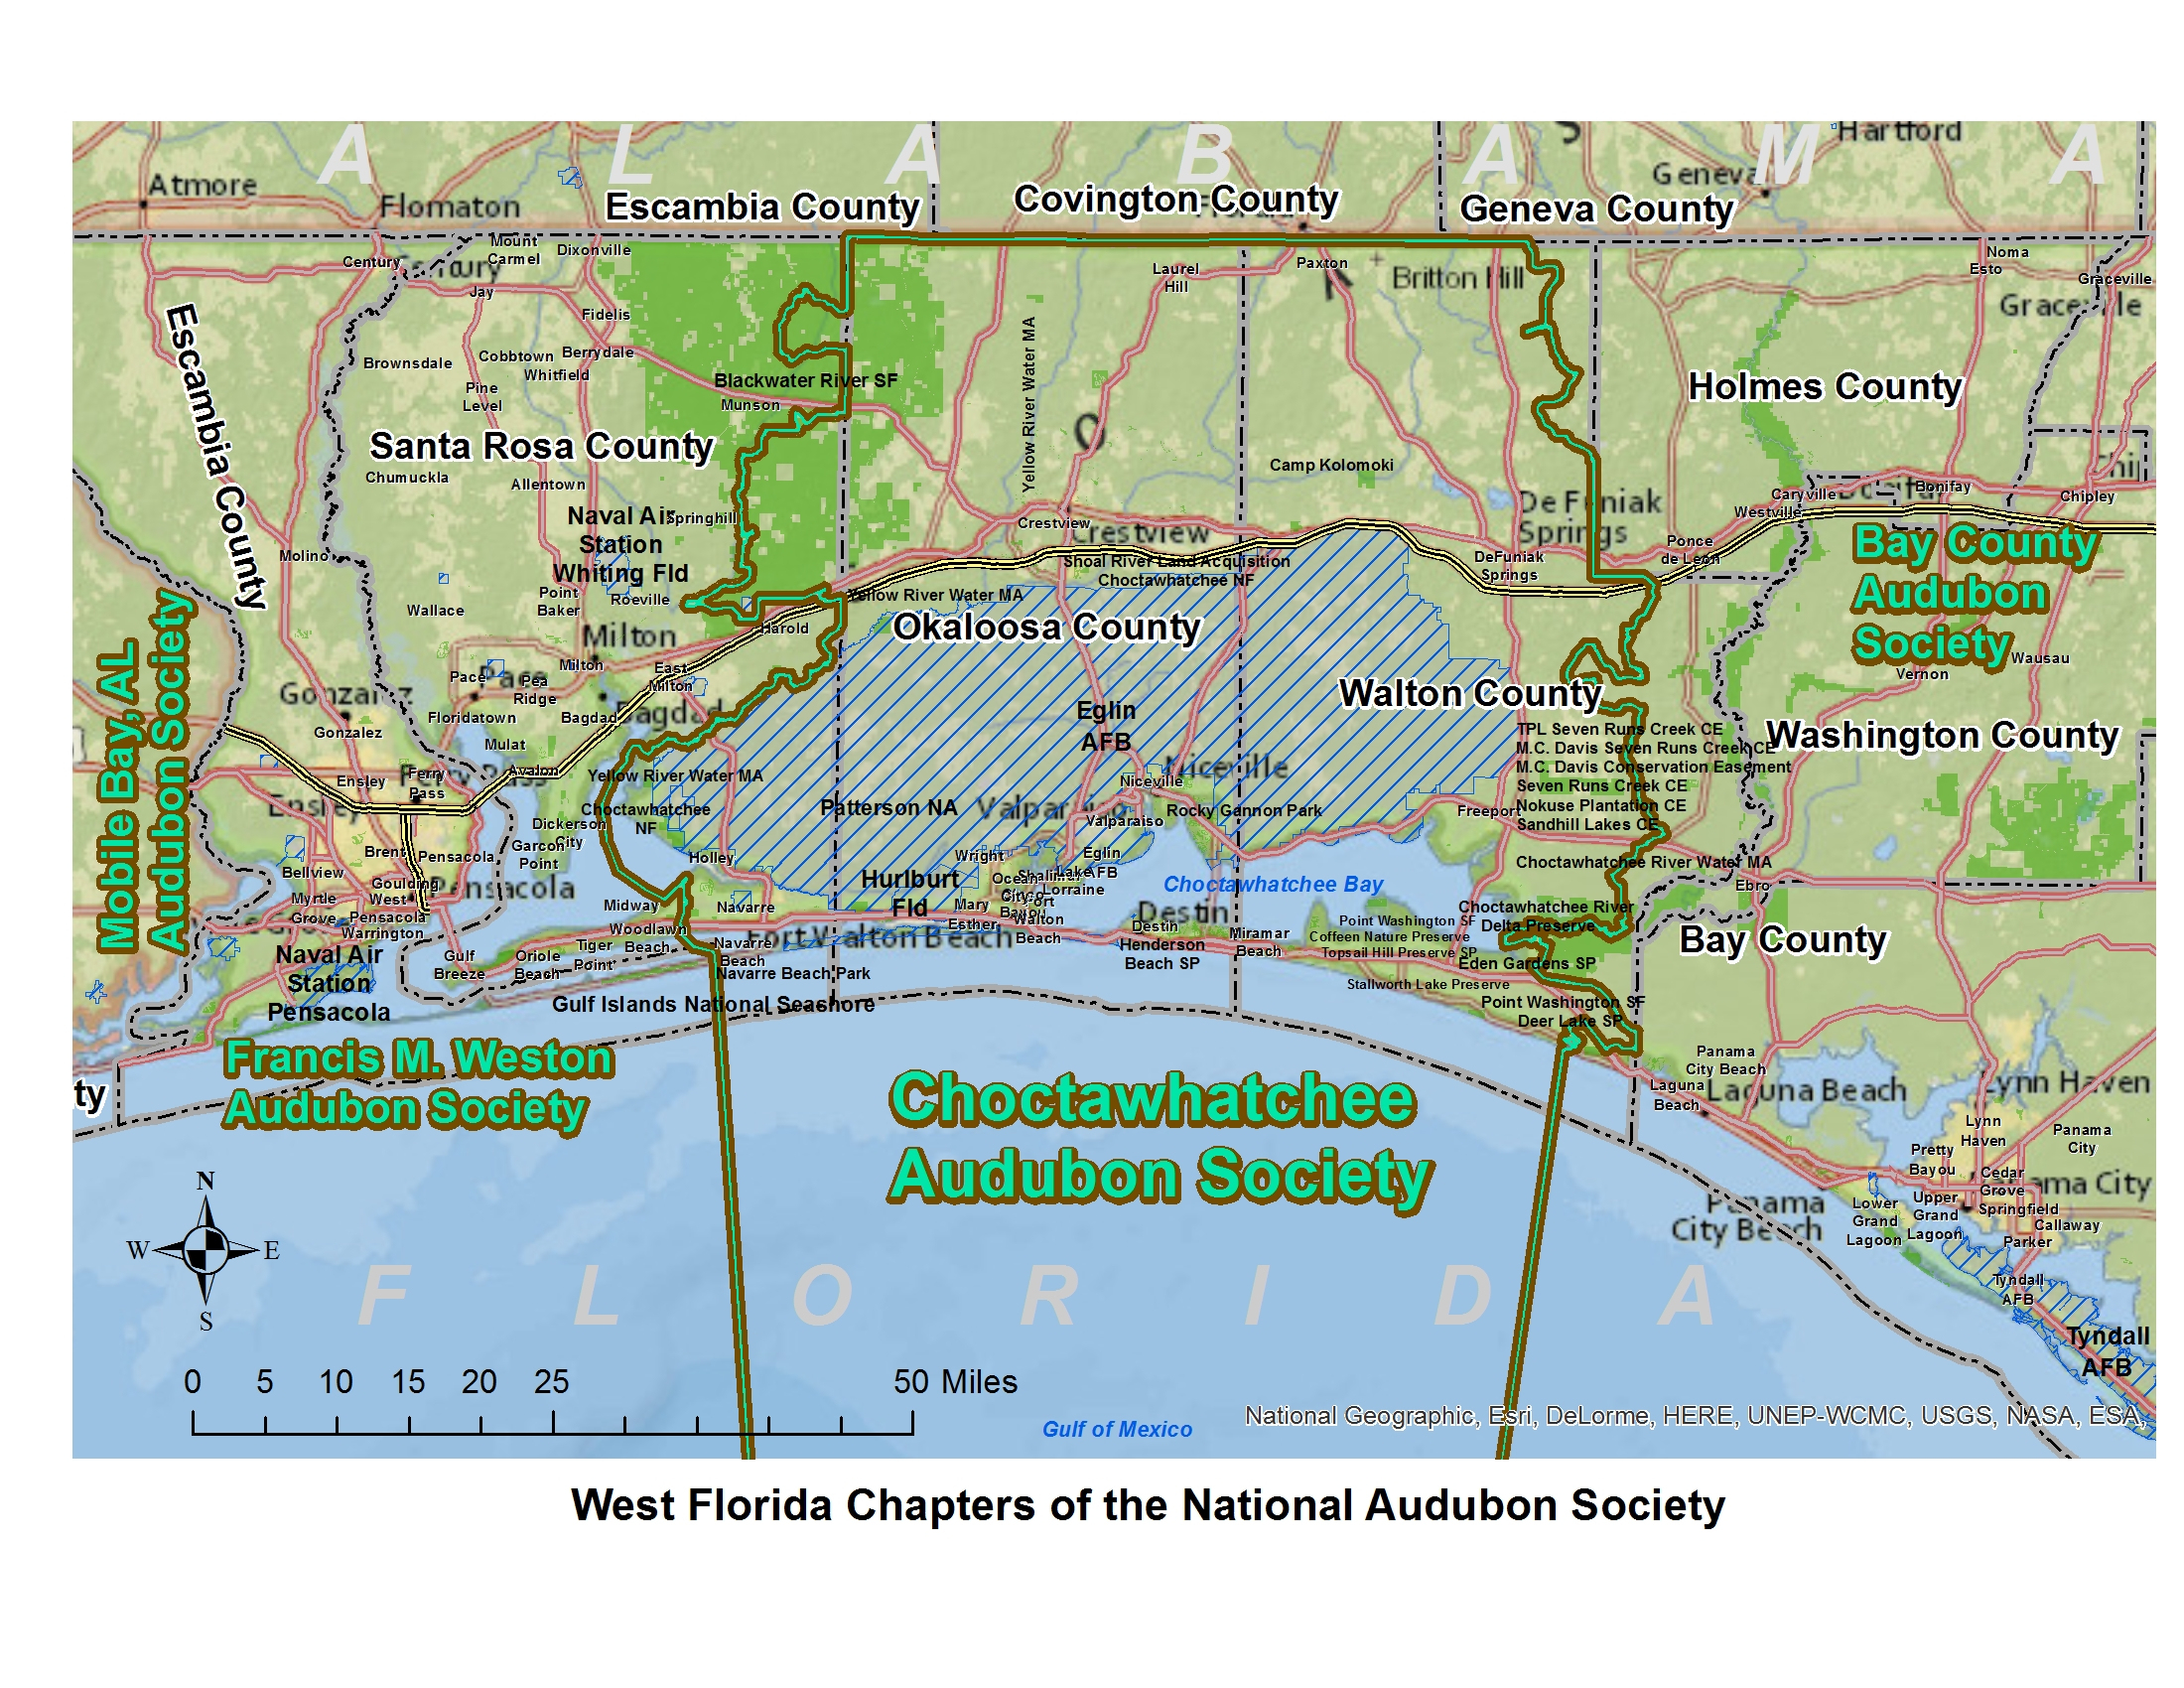 Choctawhatchee Audubon Society | Bird Hub - Great Florida Birding Trail Map